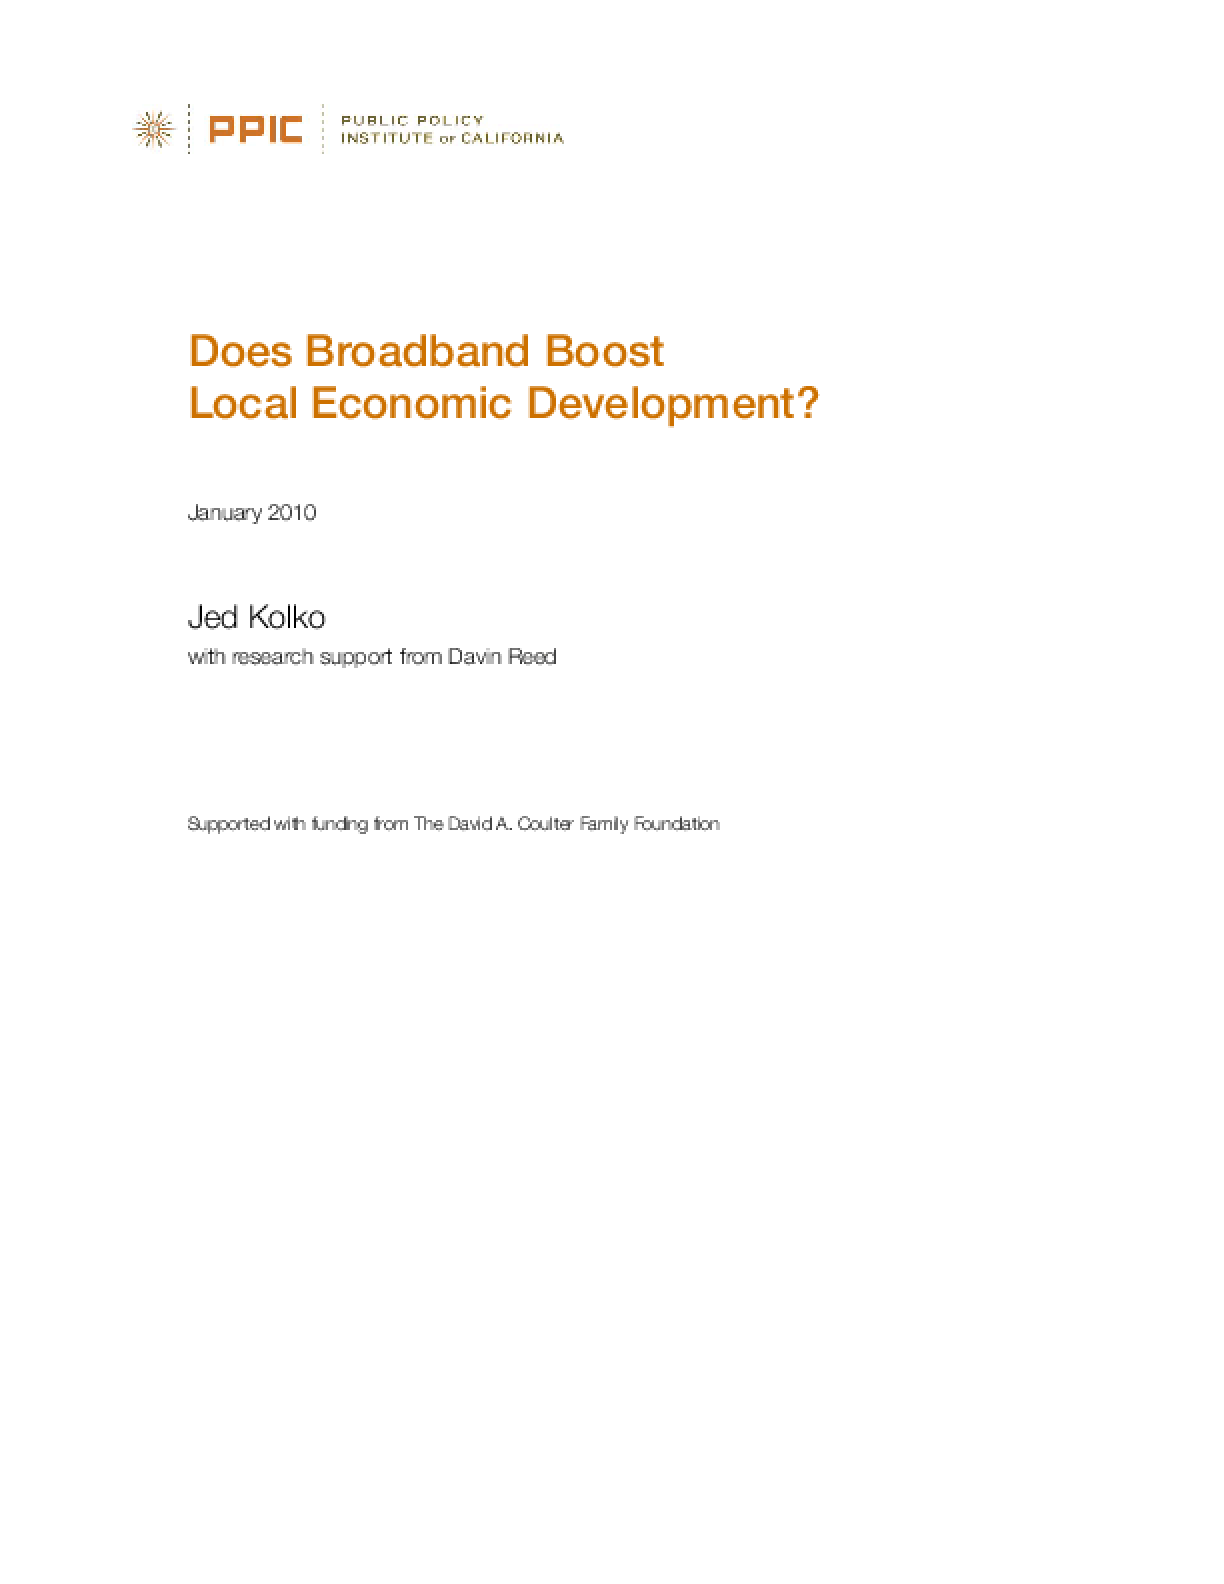 Does Broadband Boost Local Economic Development?